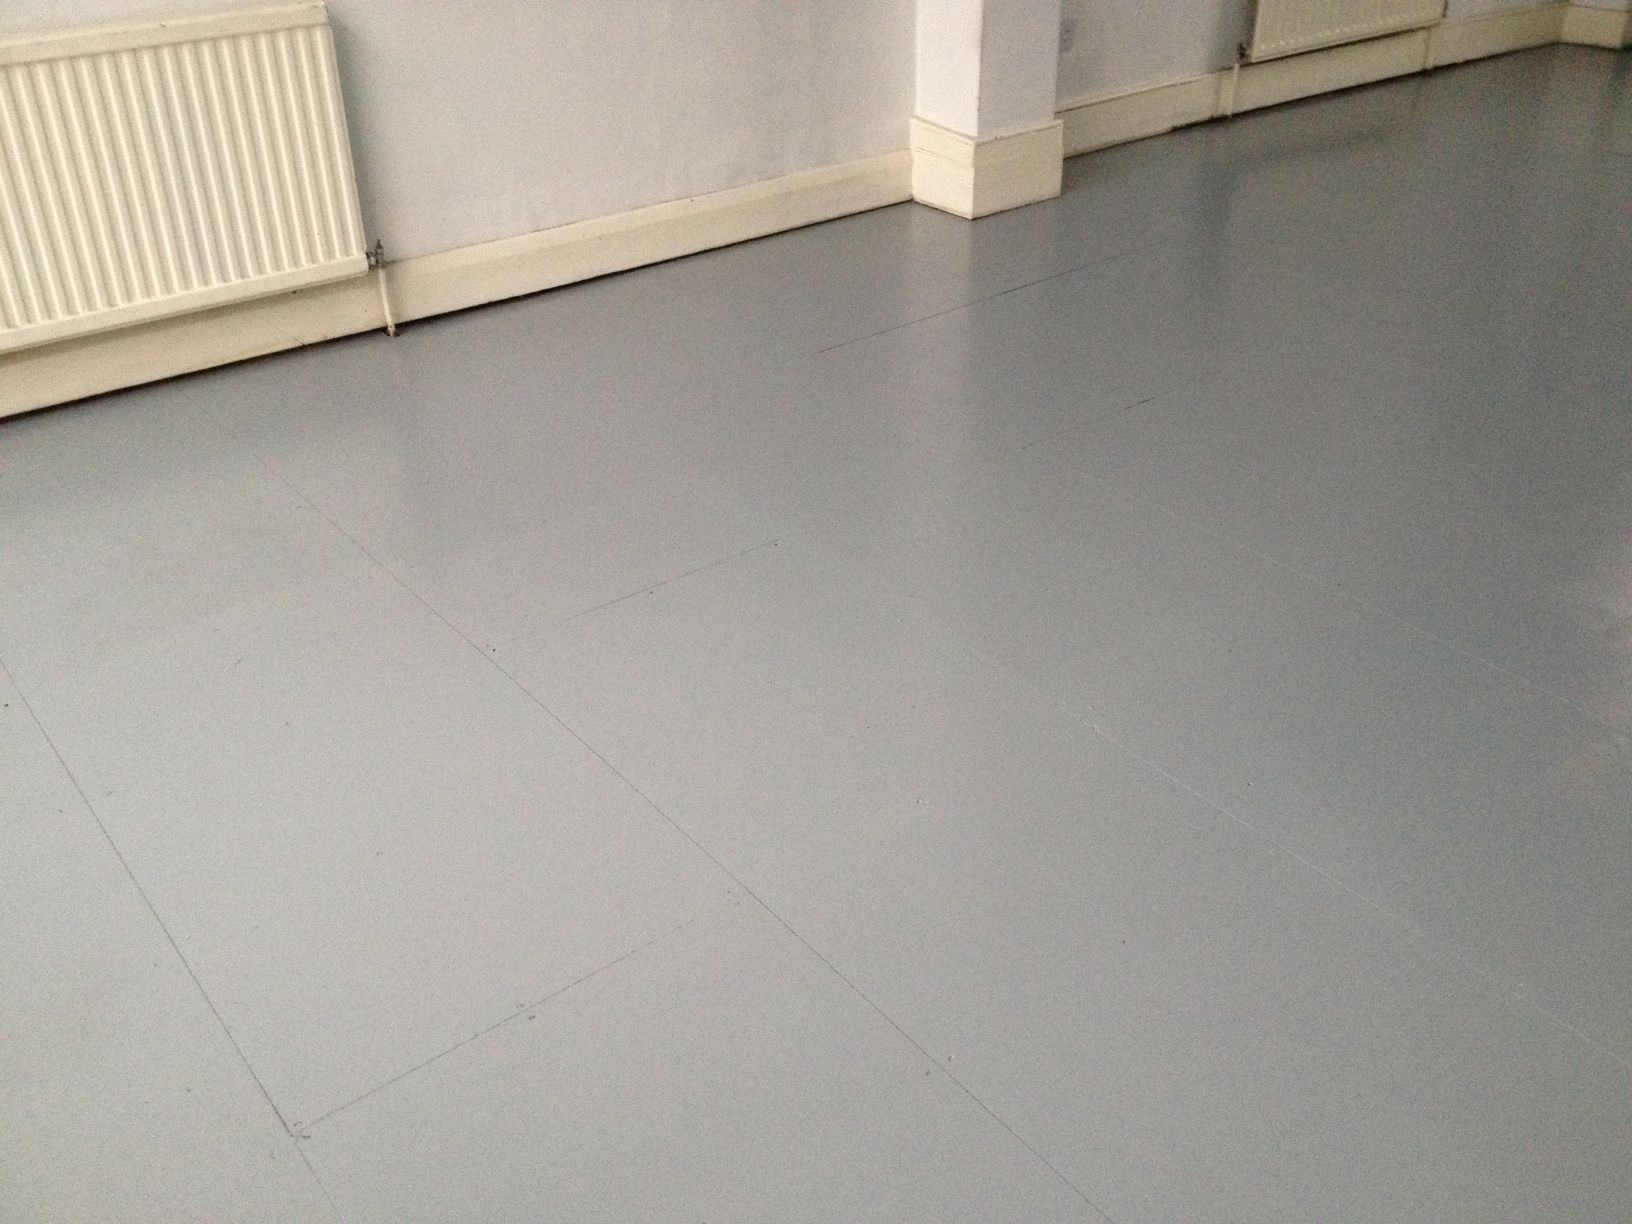 Painted chipboard - Leyland floor paint | Chipboard ...